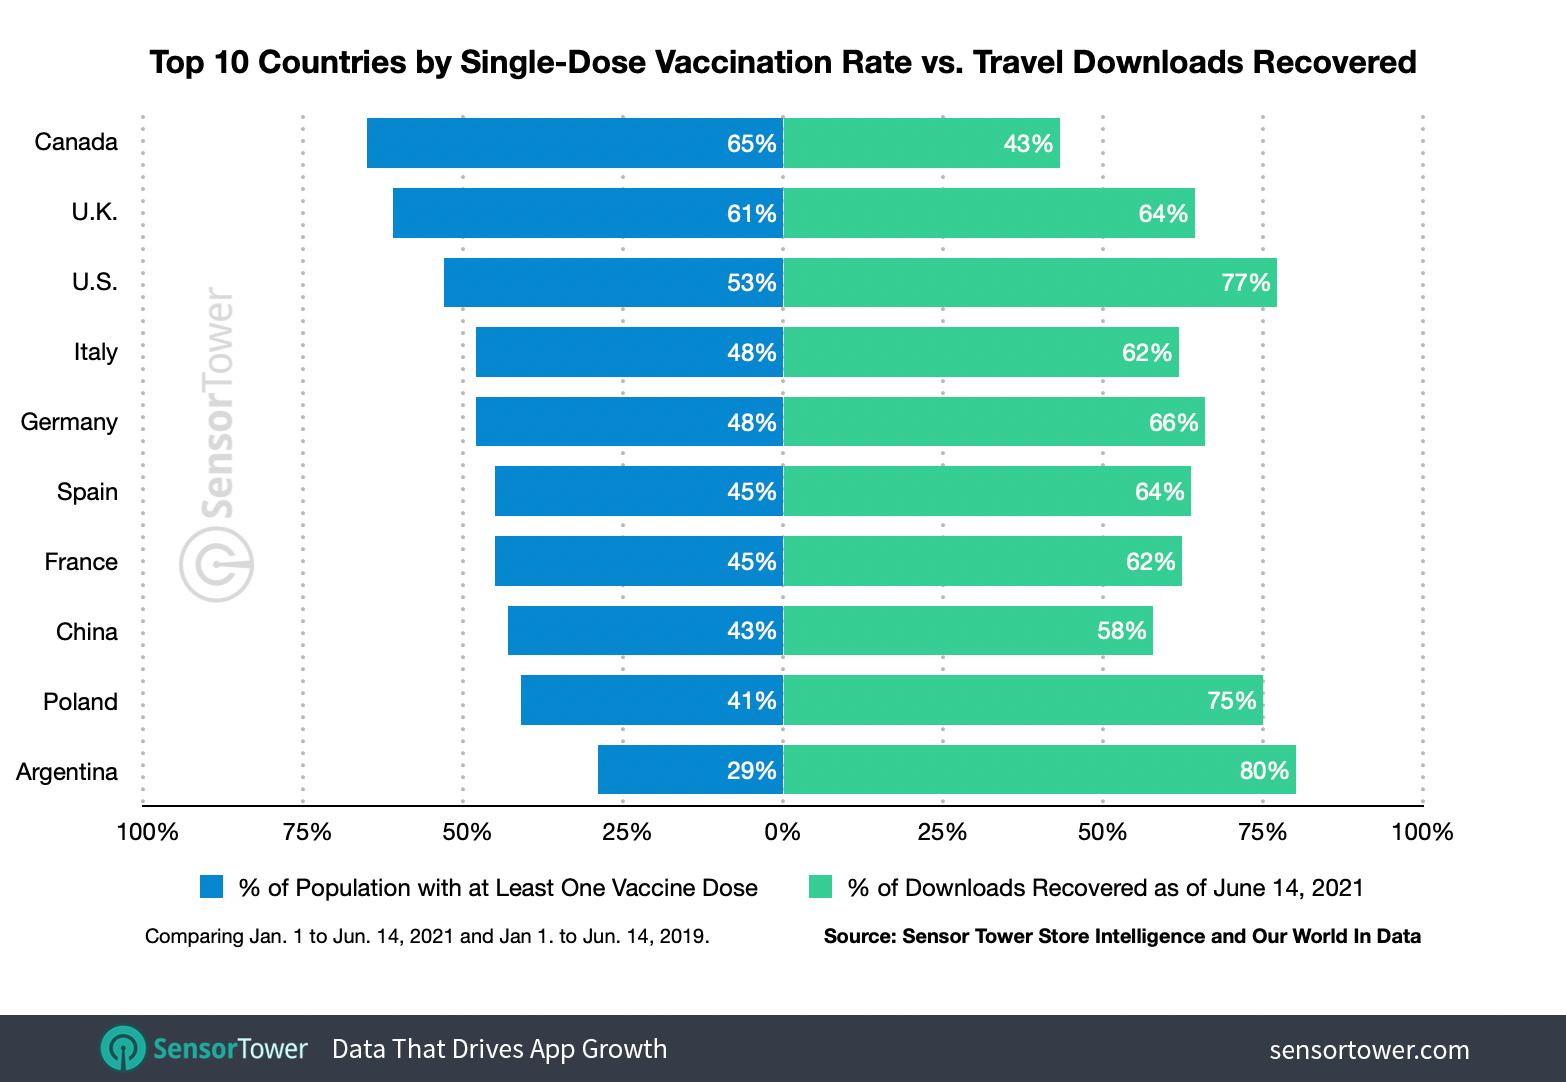 COVID-19 vaccination rates do not necessarily match the resurgence of travel app installations in every country.